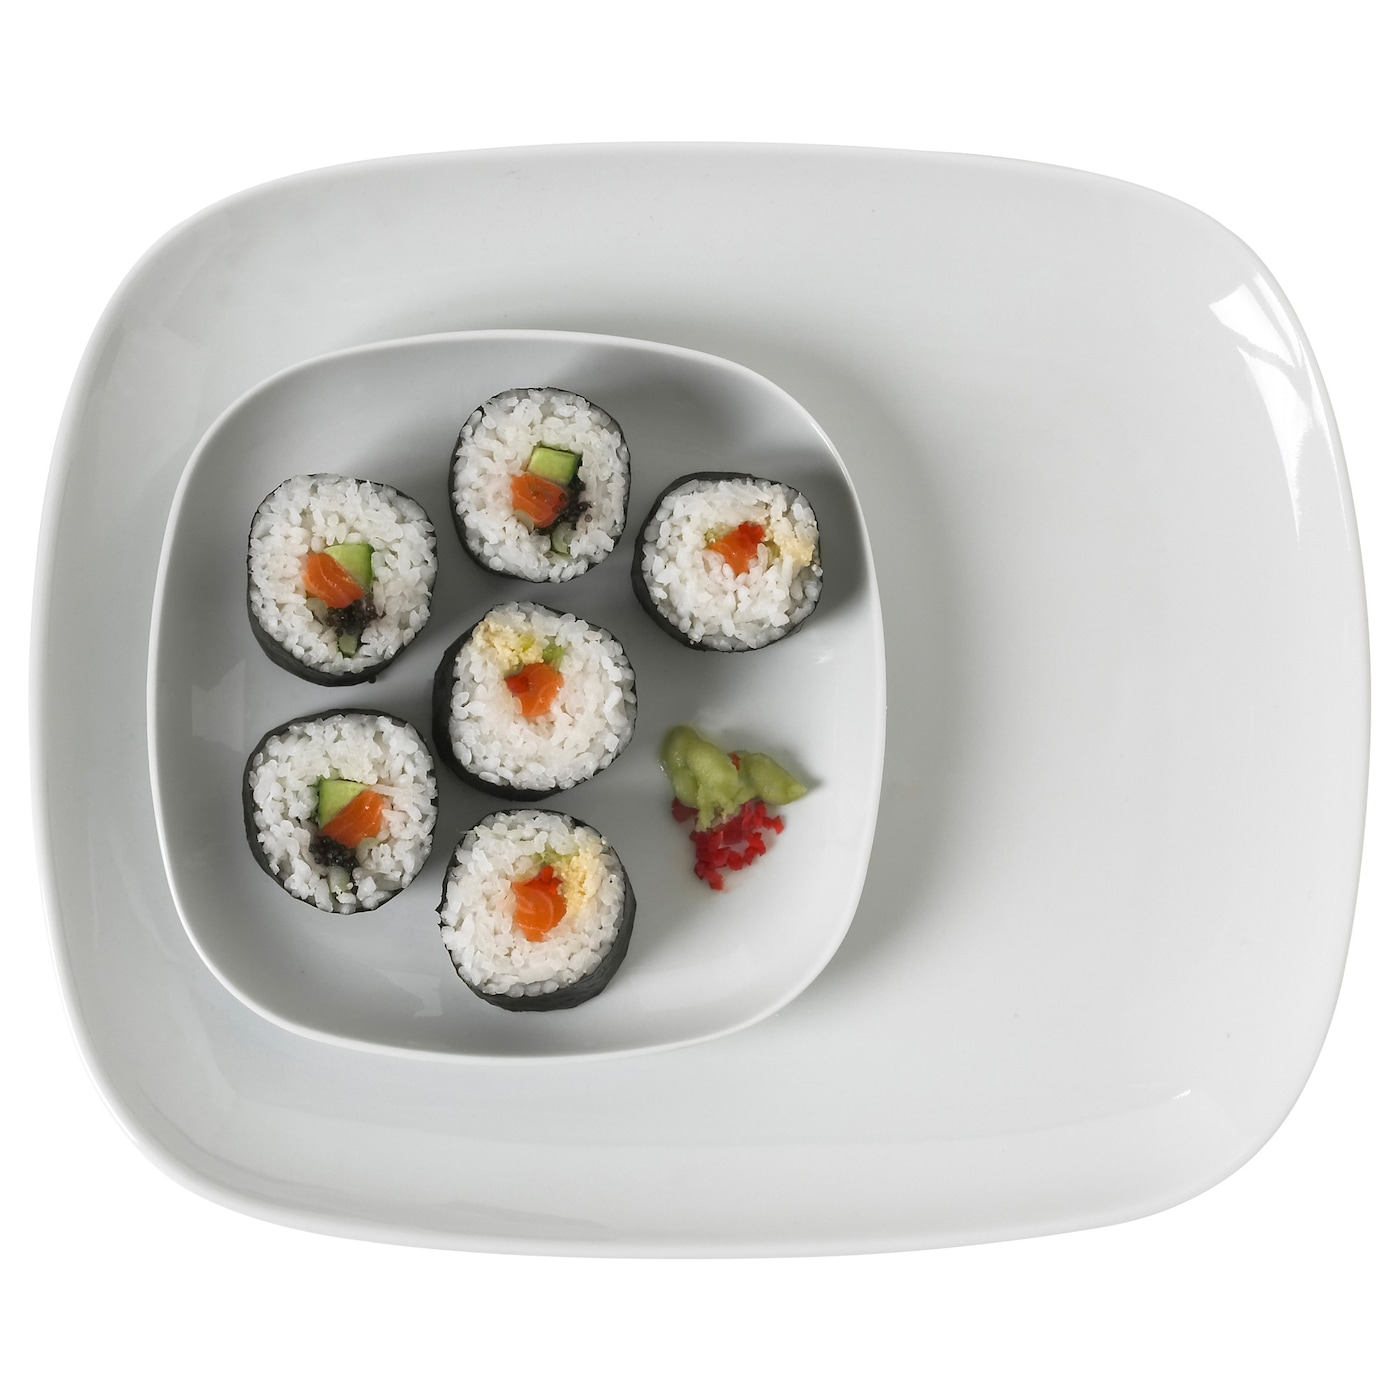 IKEA VÄRDERA plate Made of feldspar porcelain, which makes the plate impact resistant and durable.